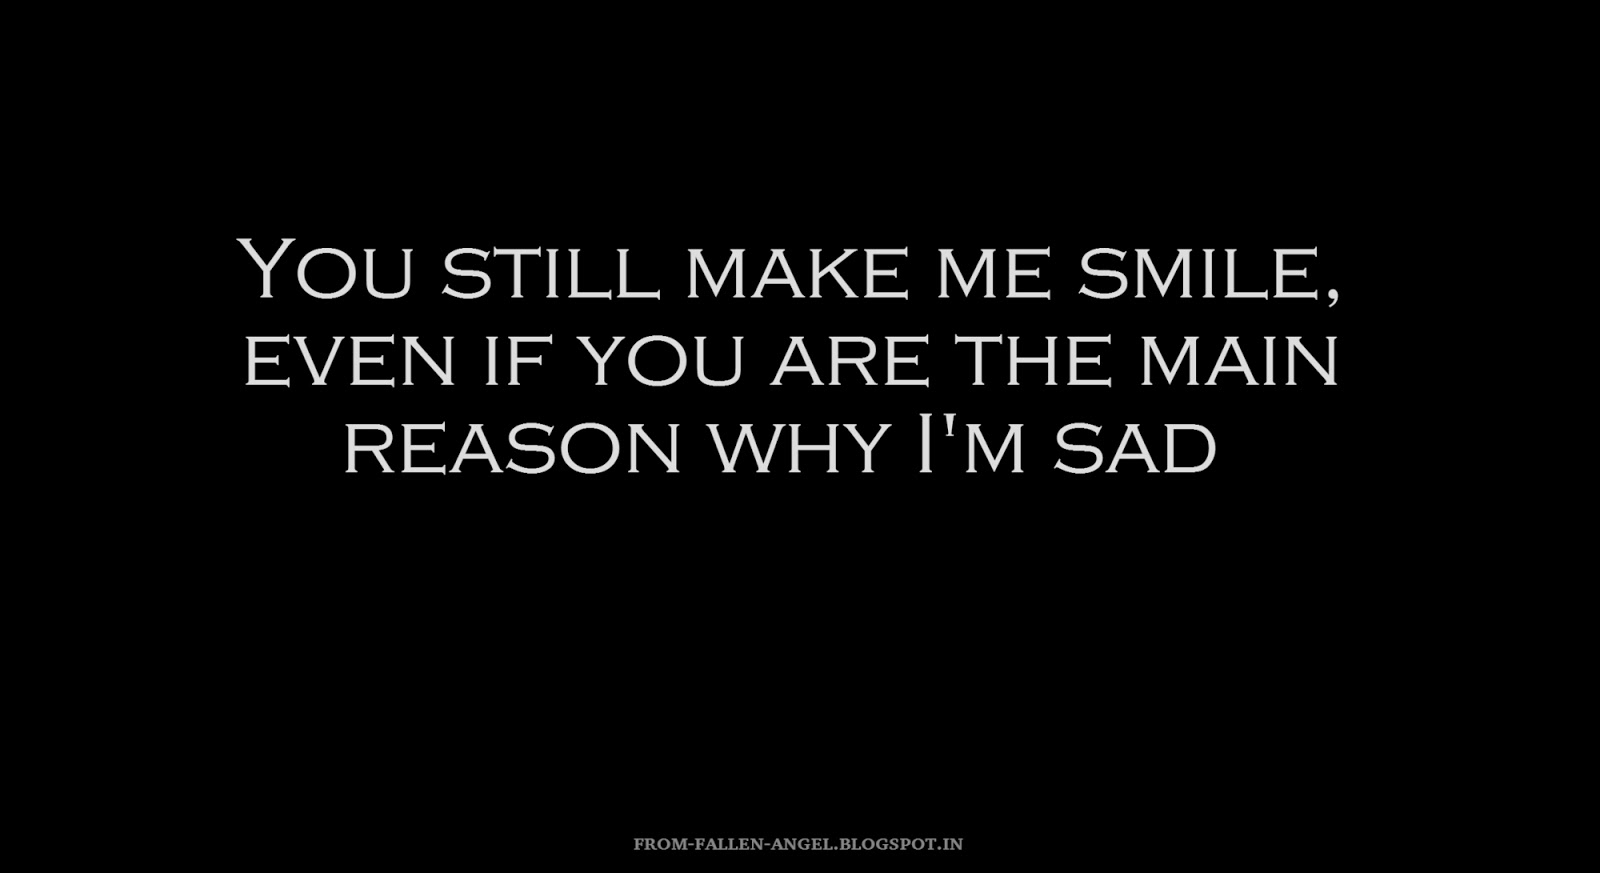 You still make me smile, even if you are the main reason why I'm sad